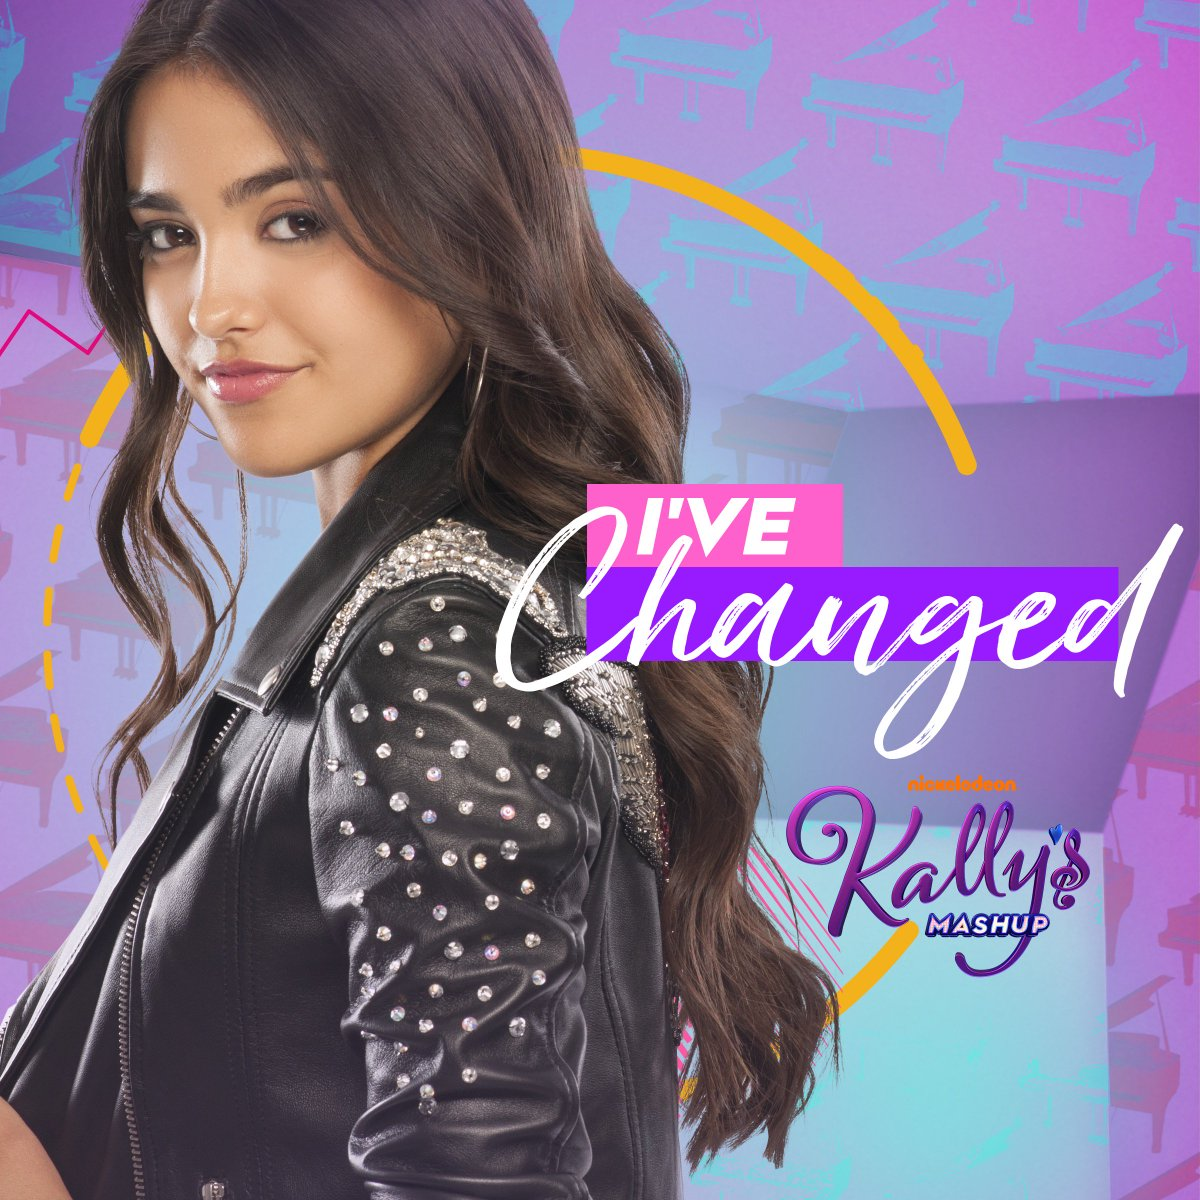 Listen to #IveChanged from today's episode of #KallysMashup featured on the soundtrack at http://www.kallysmashupofficial.com pic.twitter.com/aIdSNqRatw